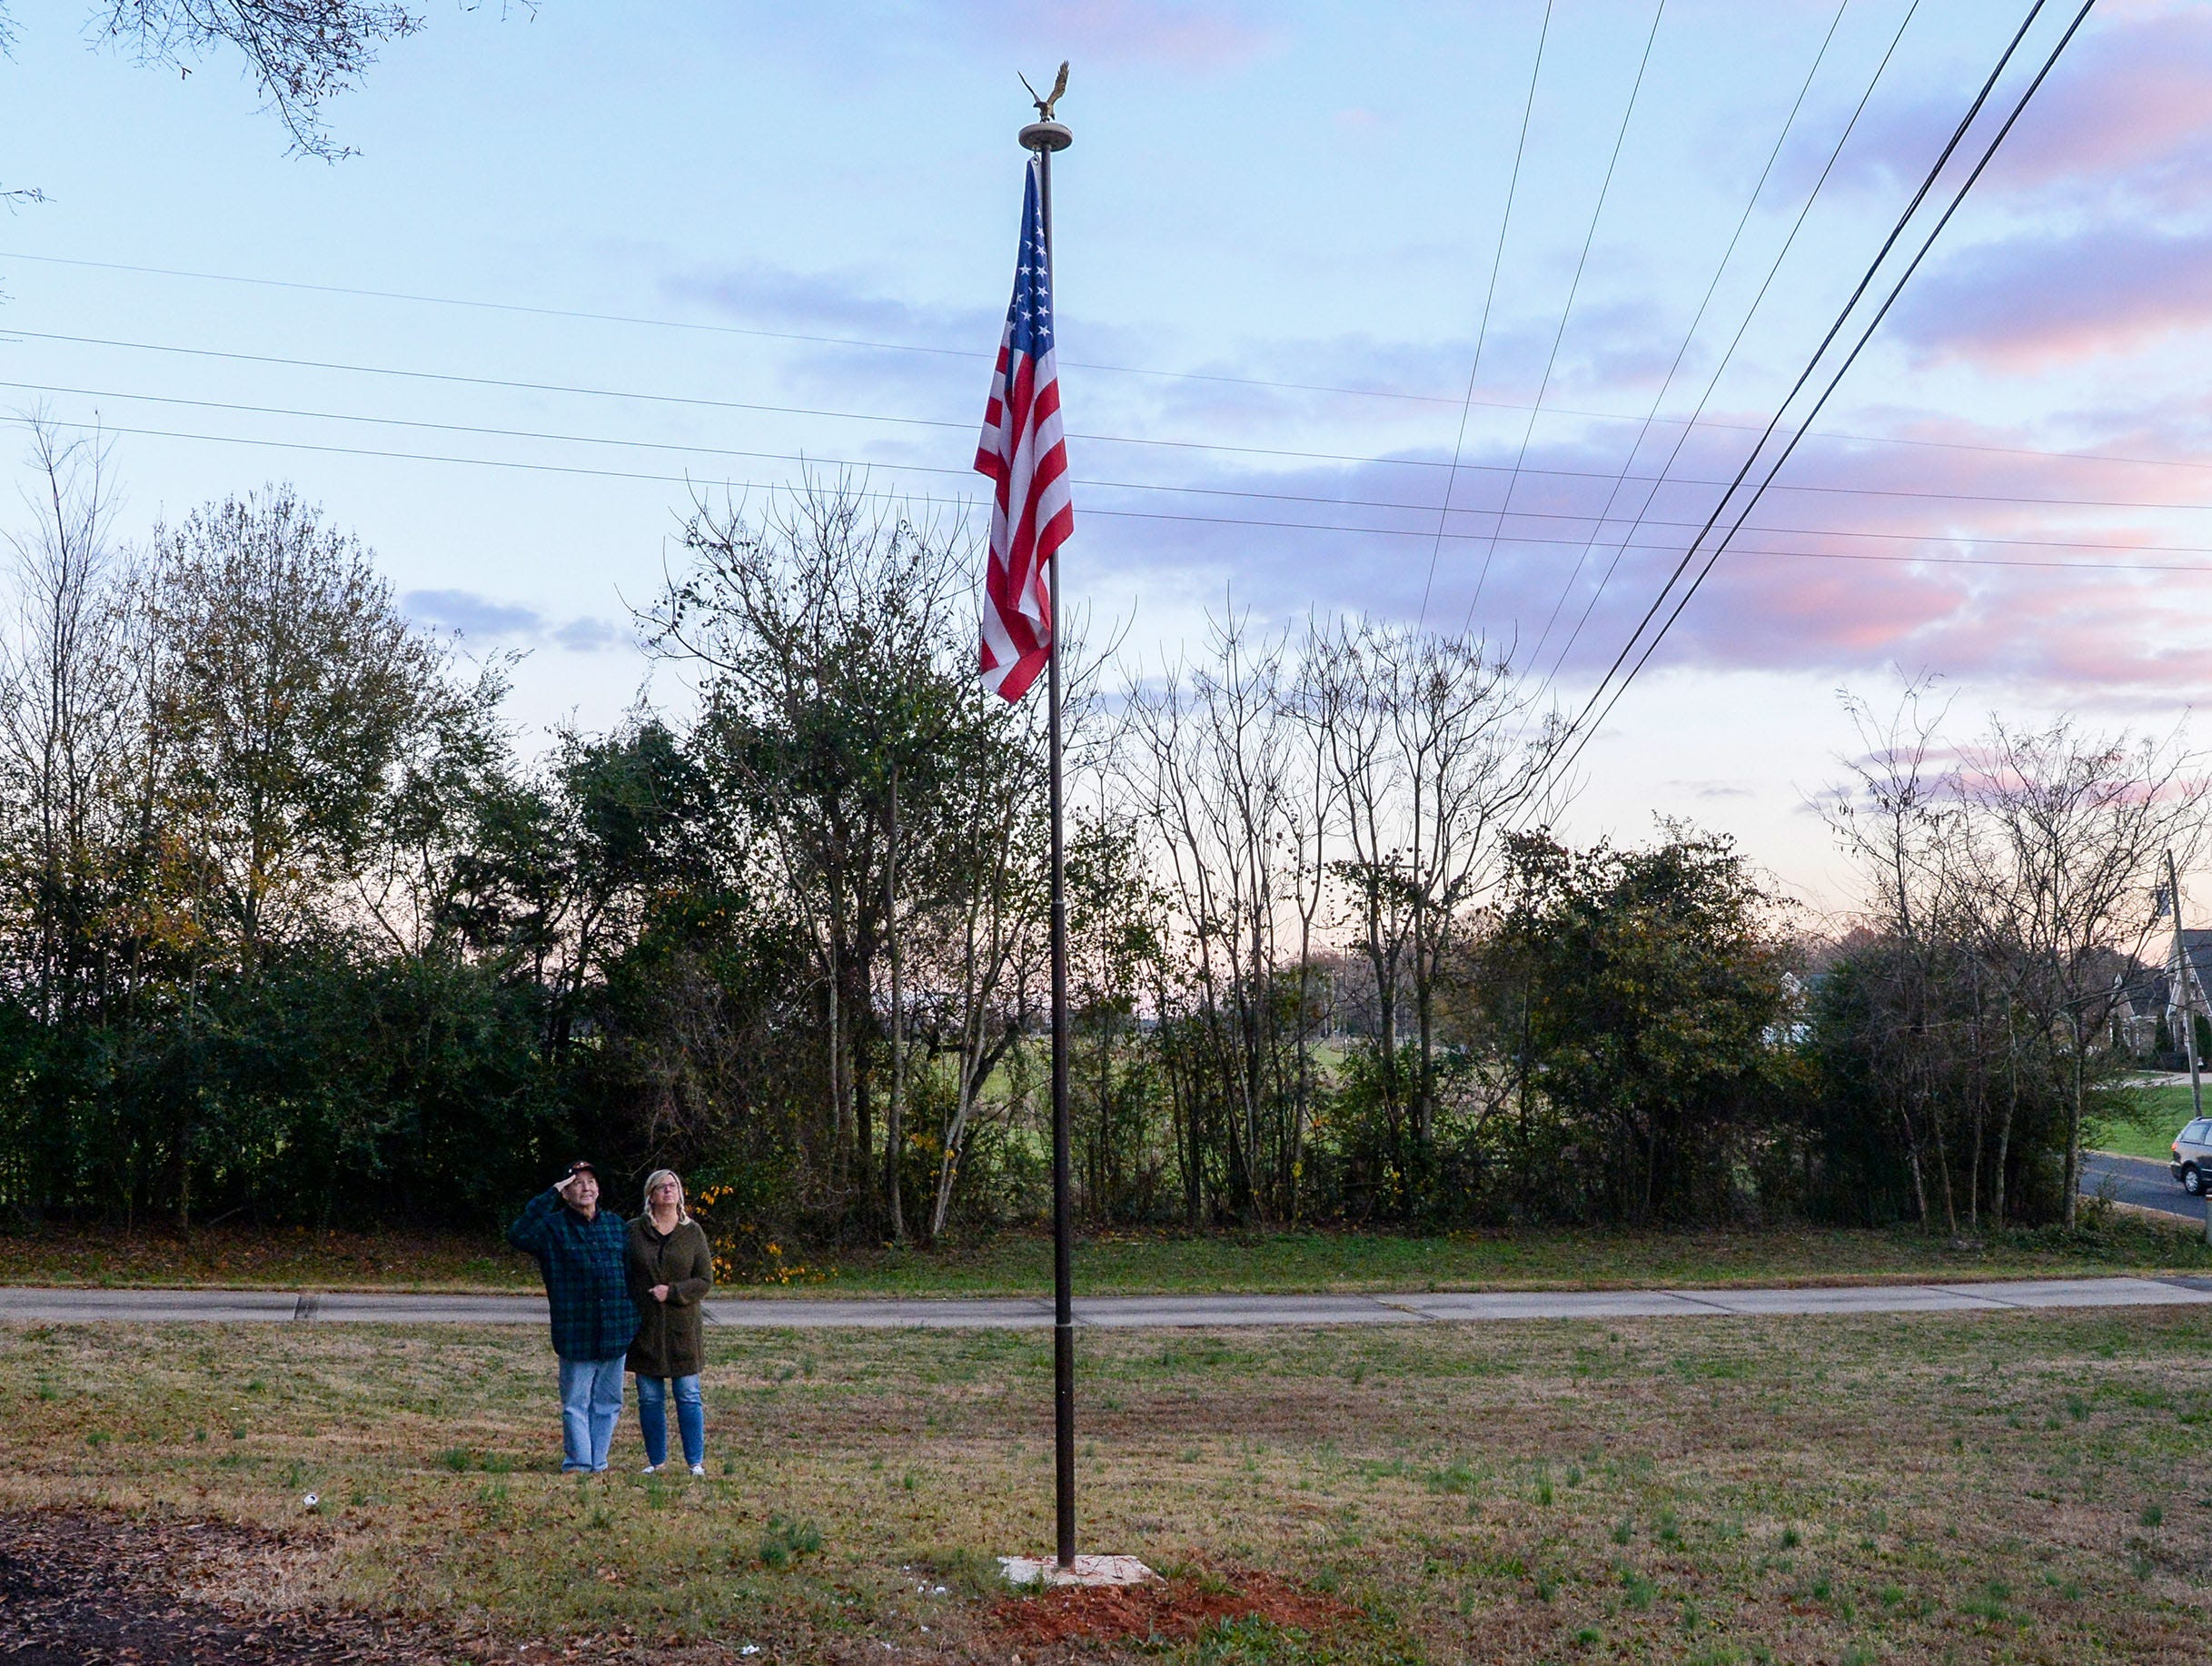 Vietnam Veteran Billy Konrad, left, salutes the U.S. flag near his wife Bonnie Konrad in their front yard, between looking at the sunset sky over the West side of Anderson in December.